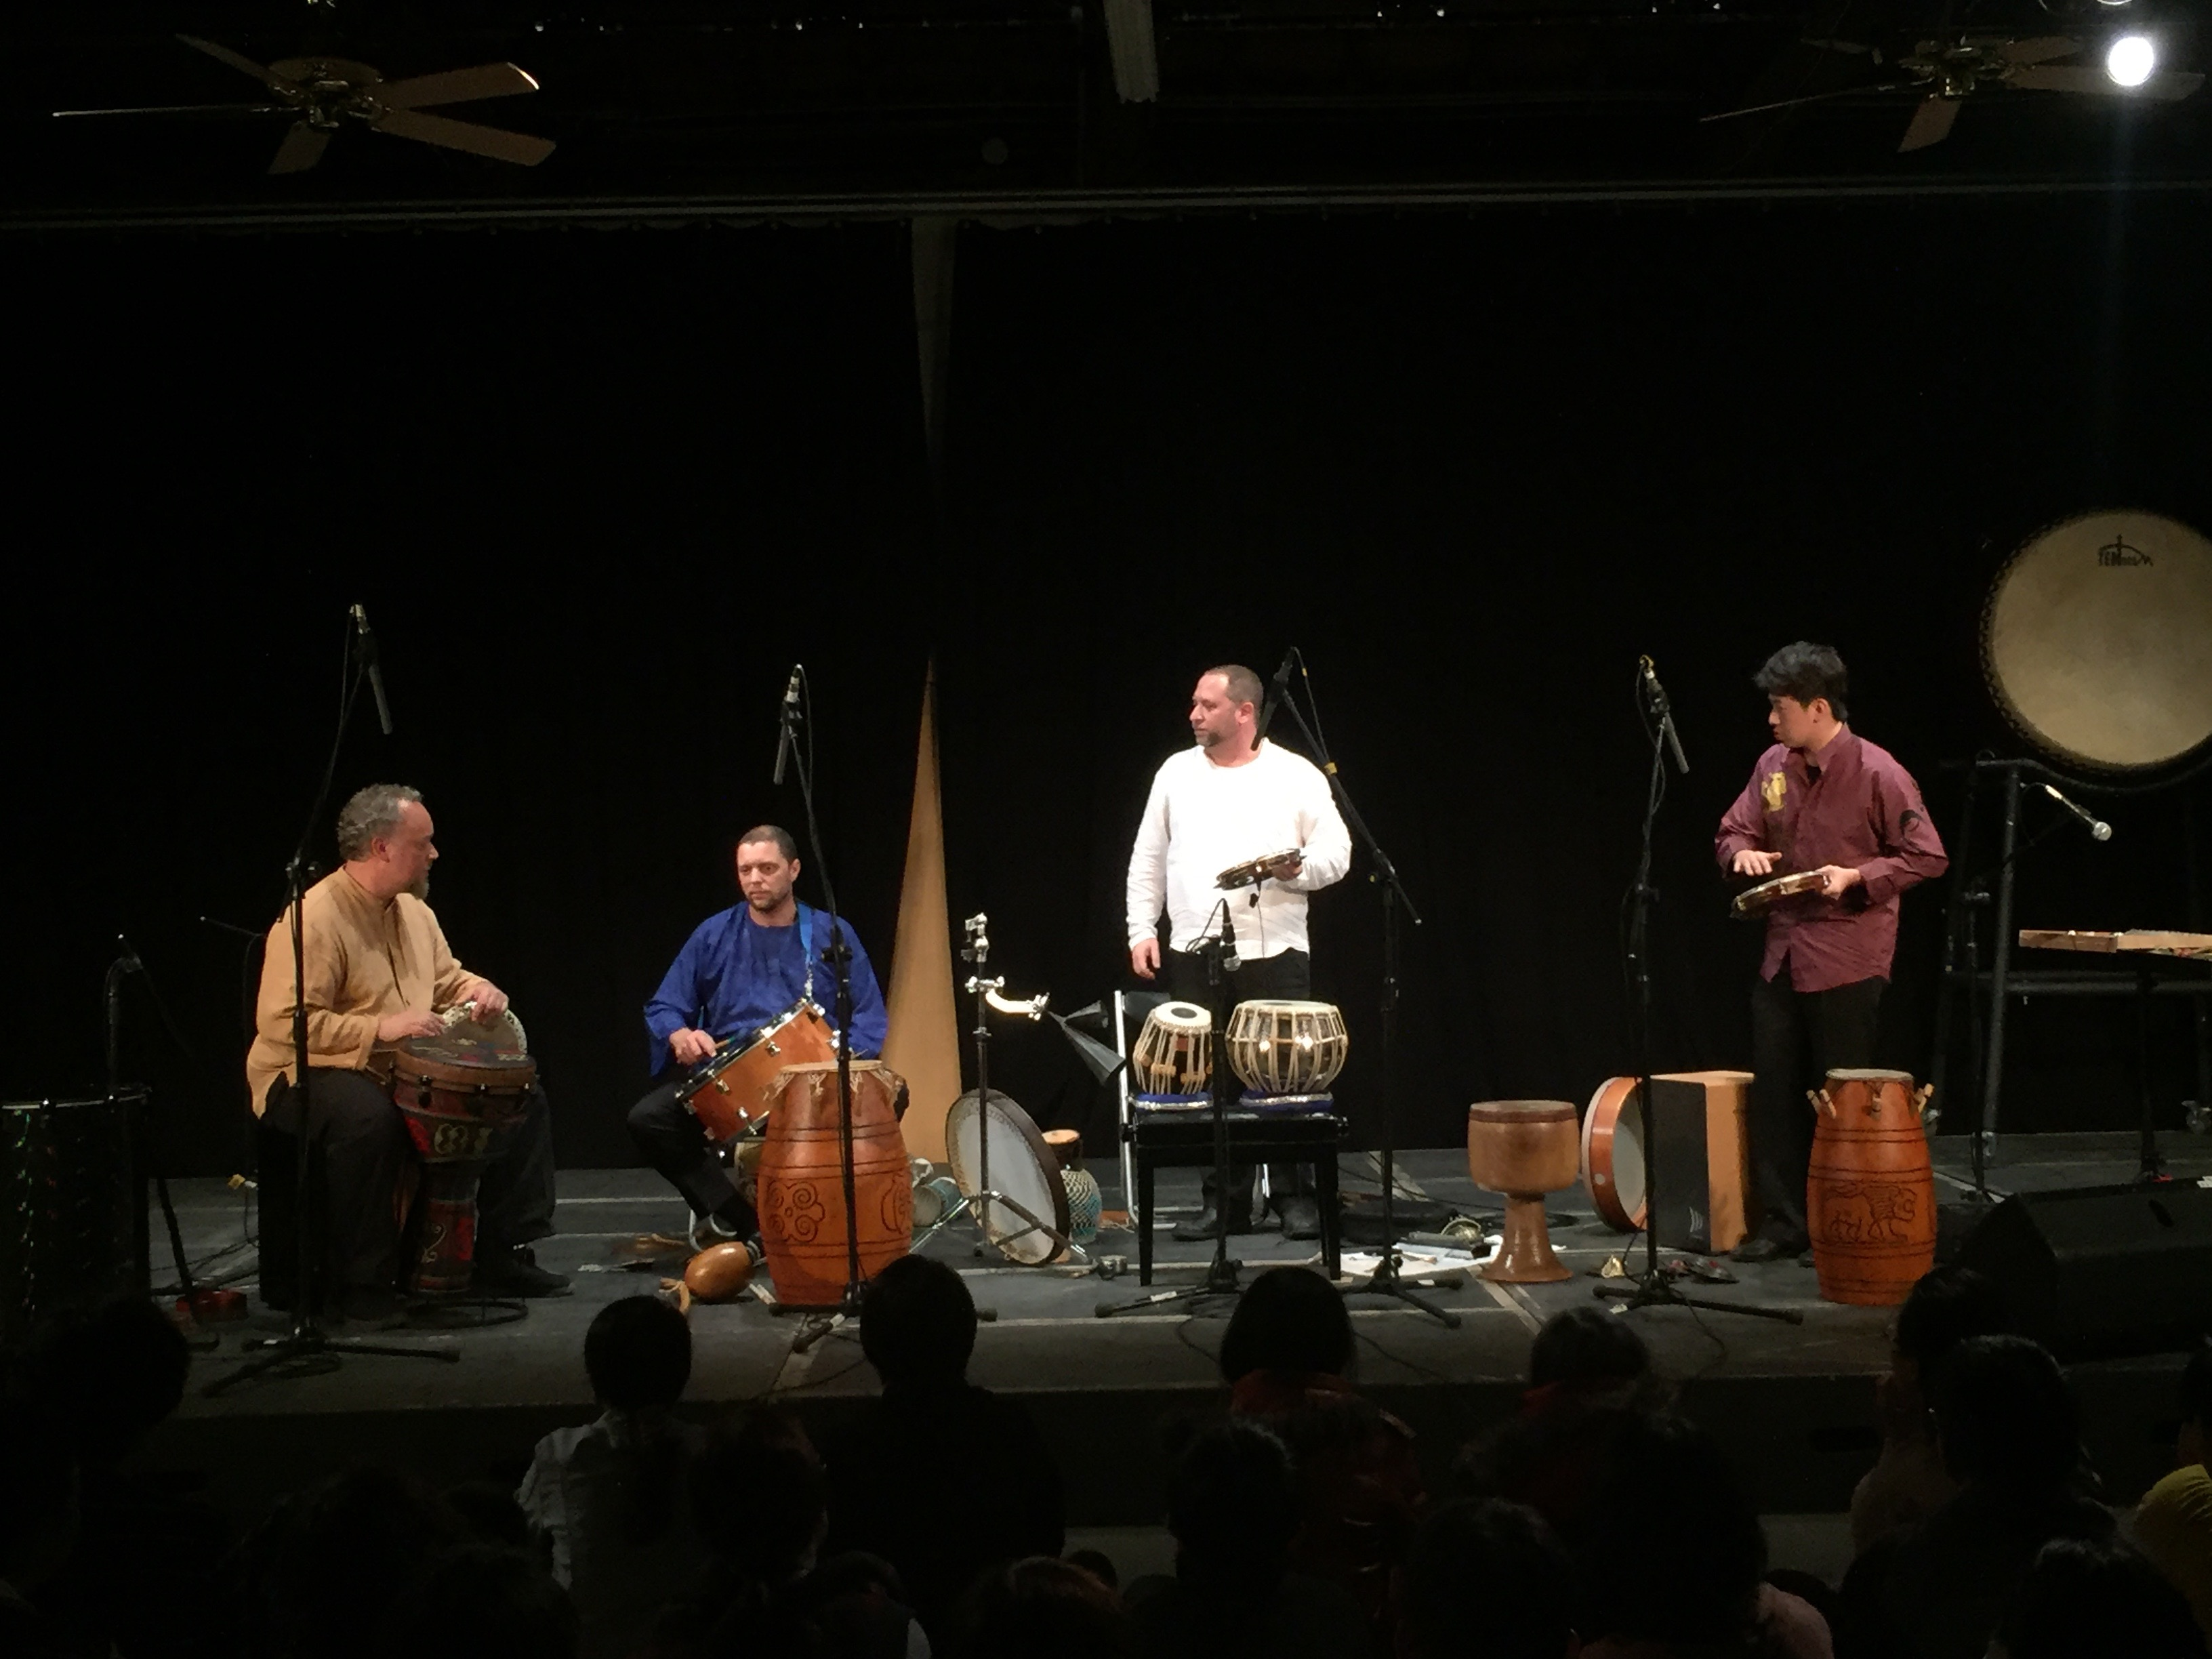 Hands On\'Semble at Ten Drum in Taiwan with special guest Andy Cheng February 2016